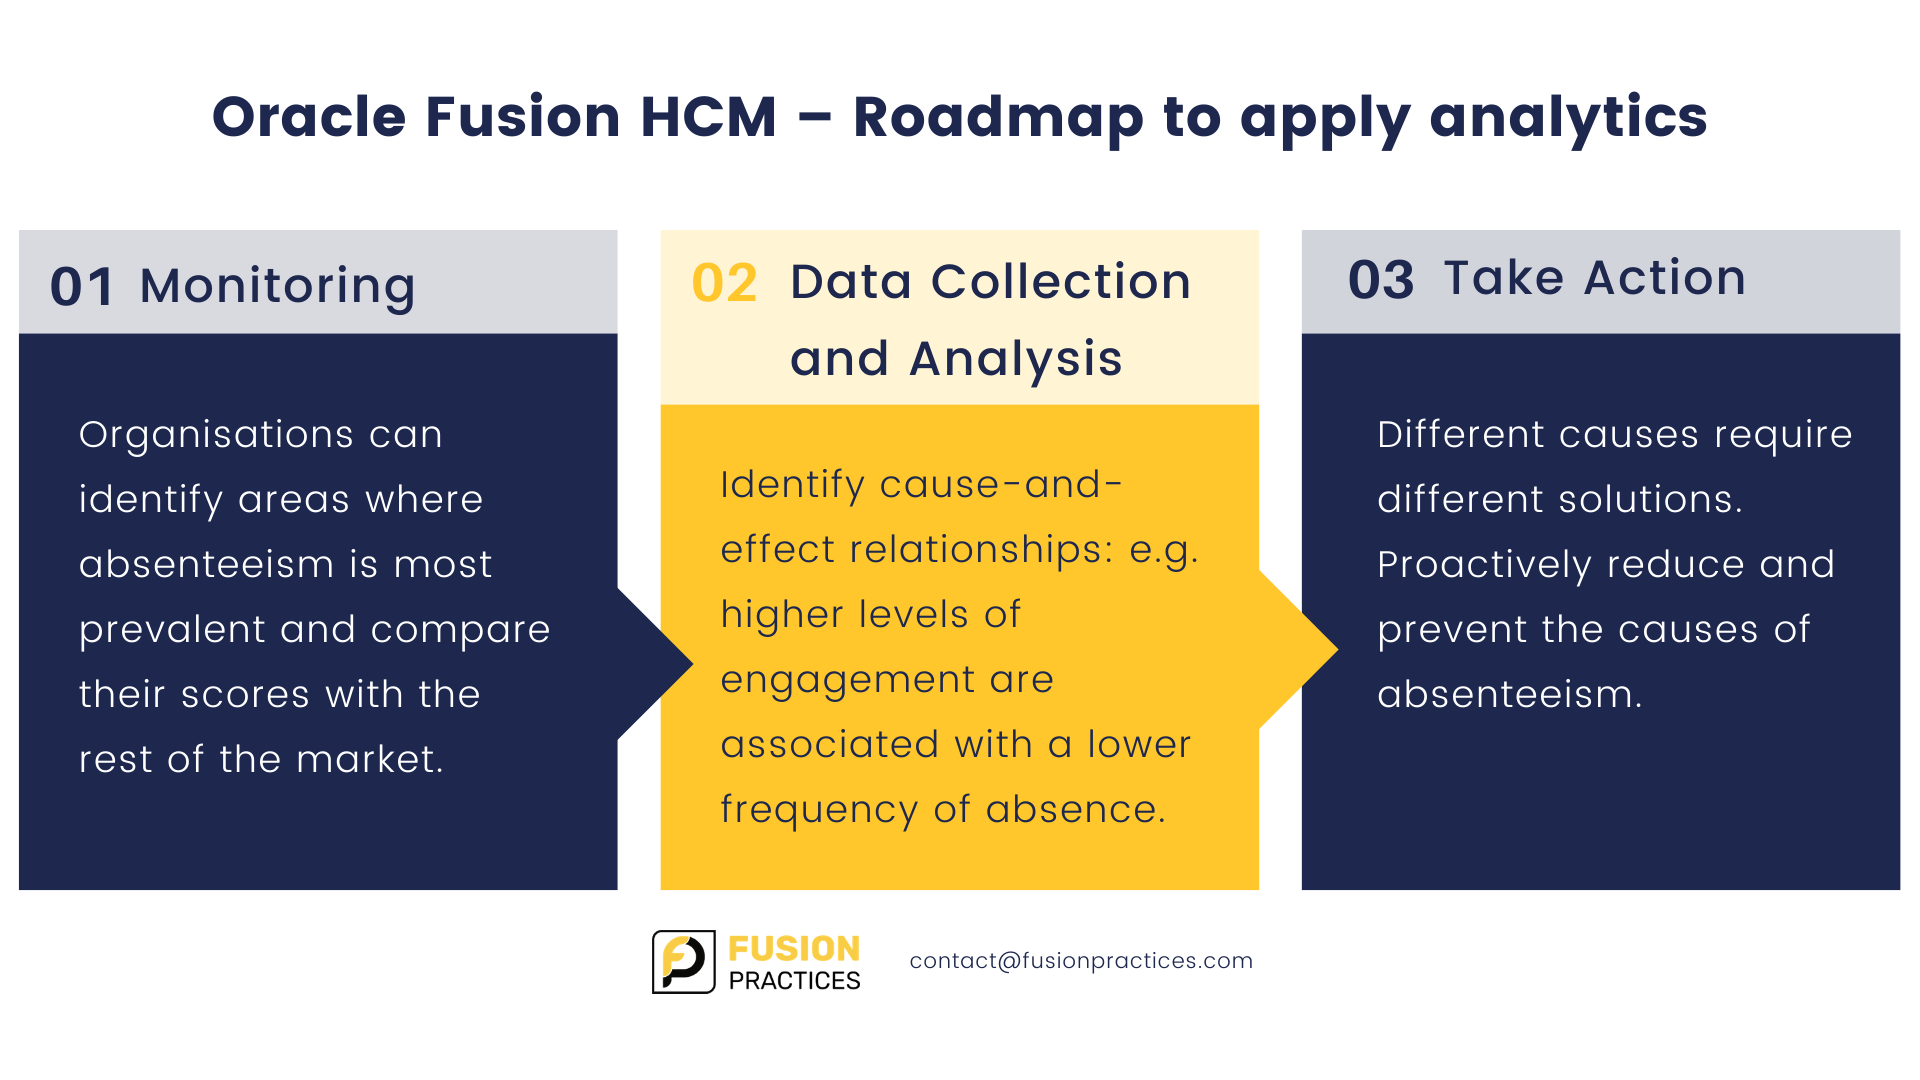 Oracle Fusion HCM - Roadmap to apply analytics